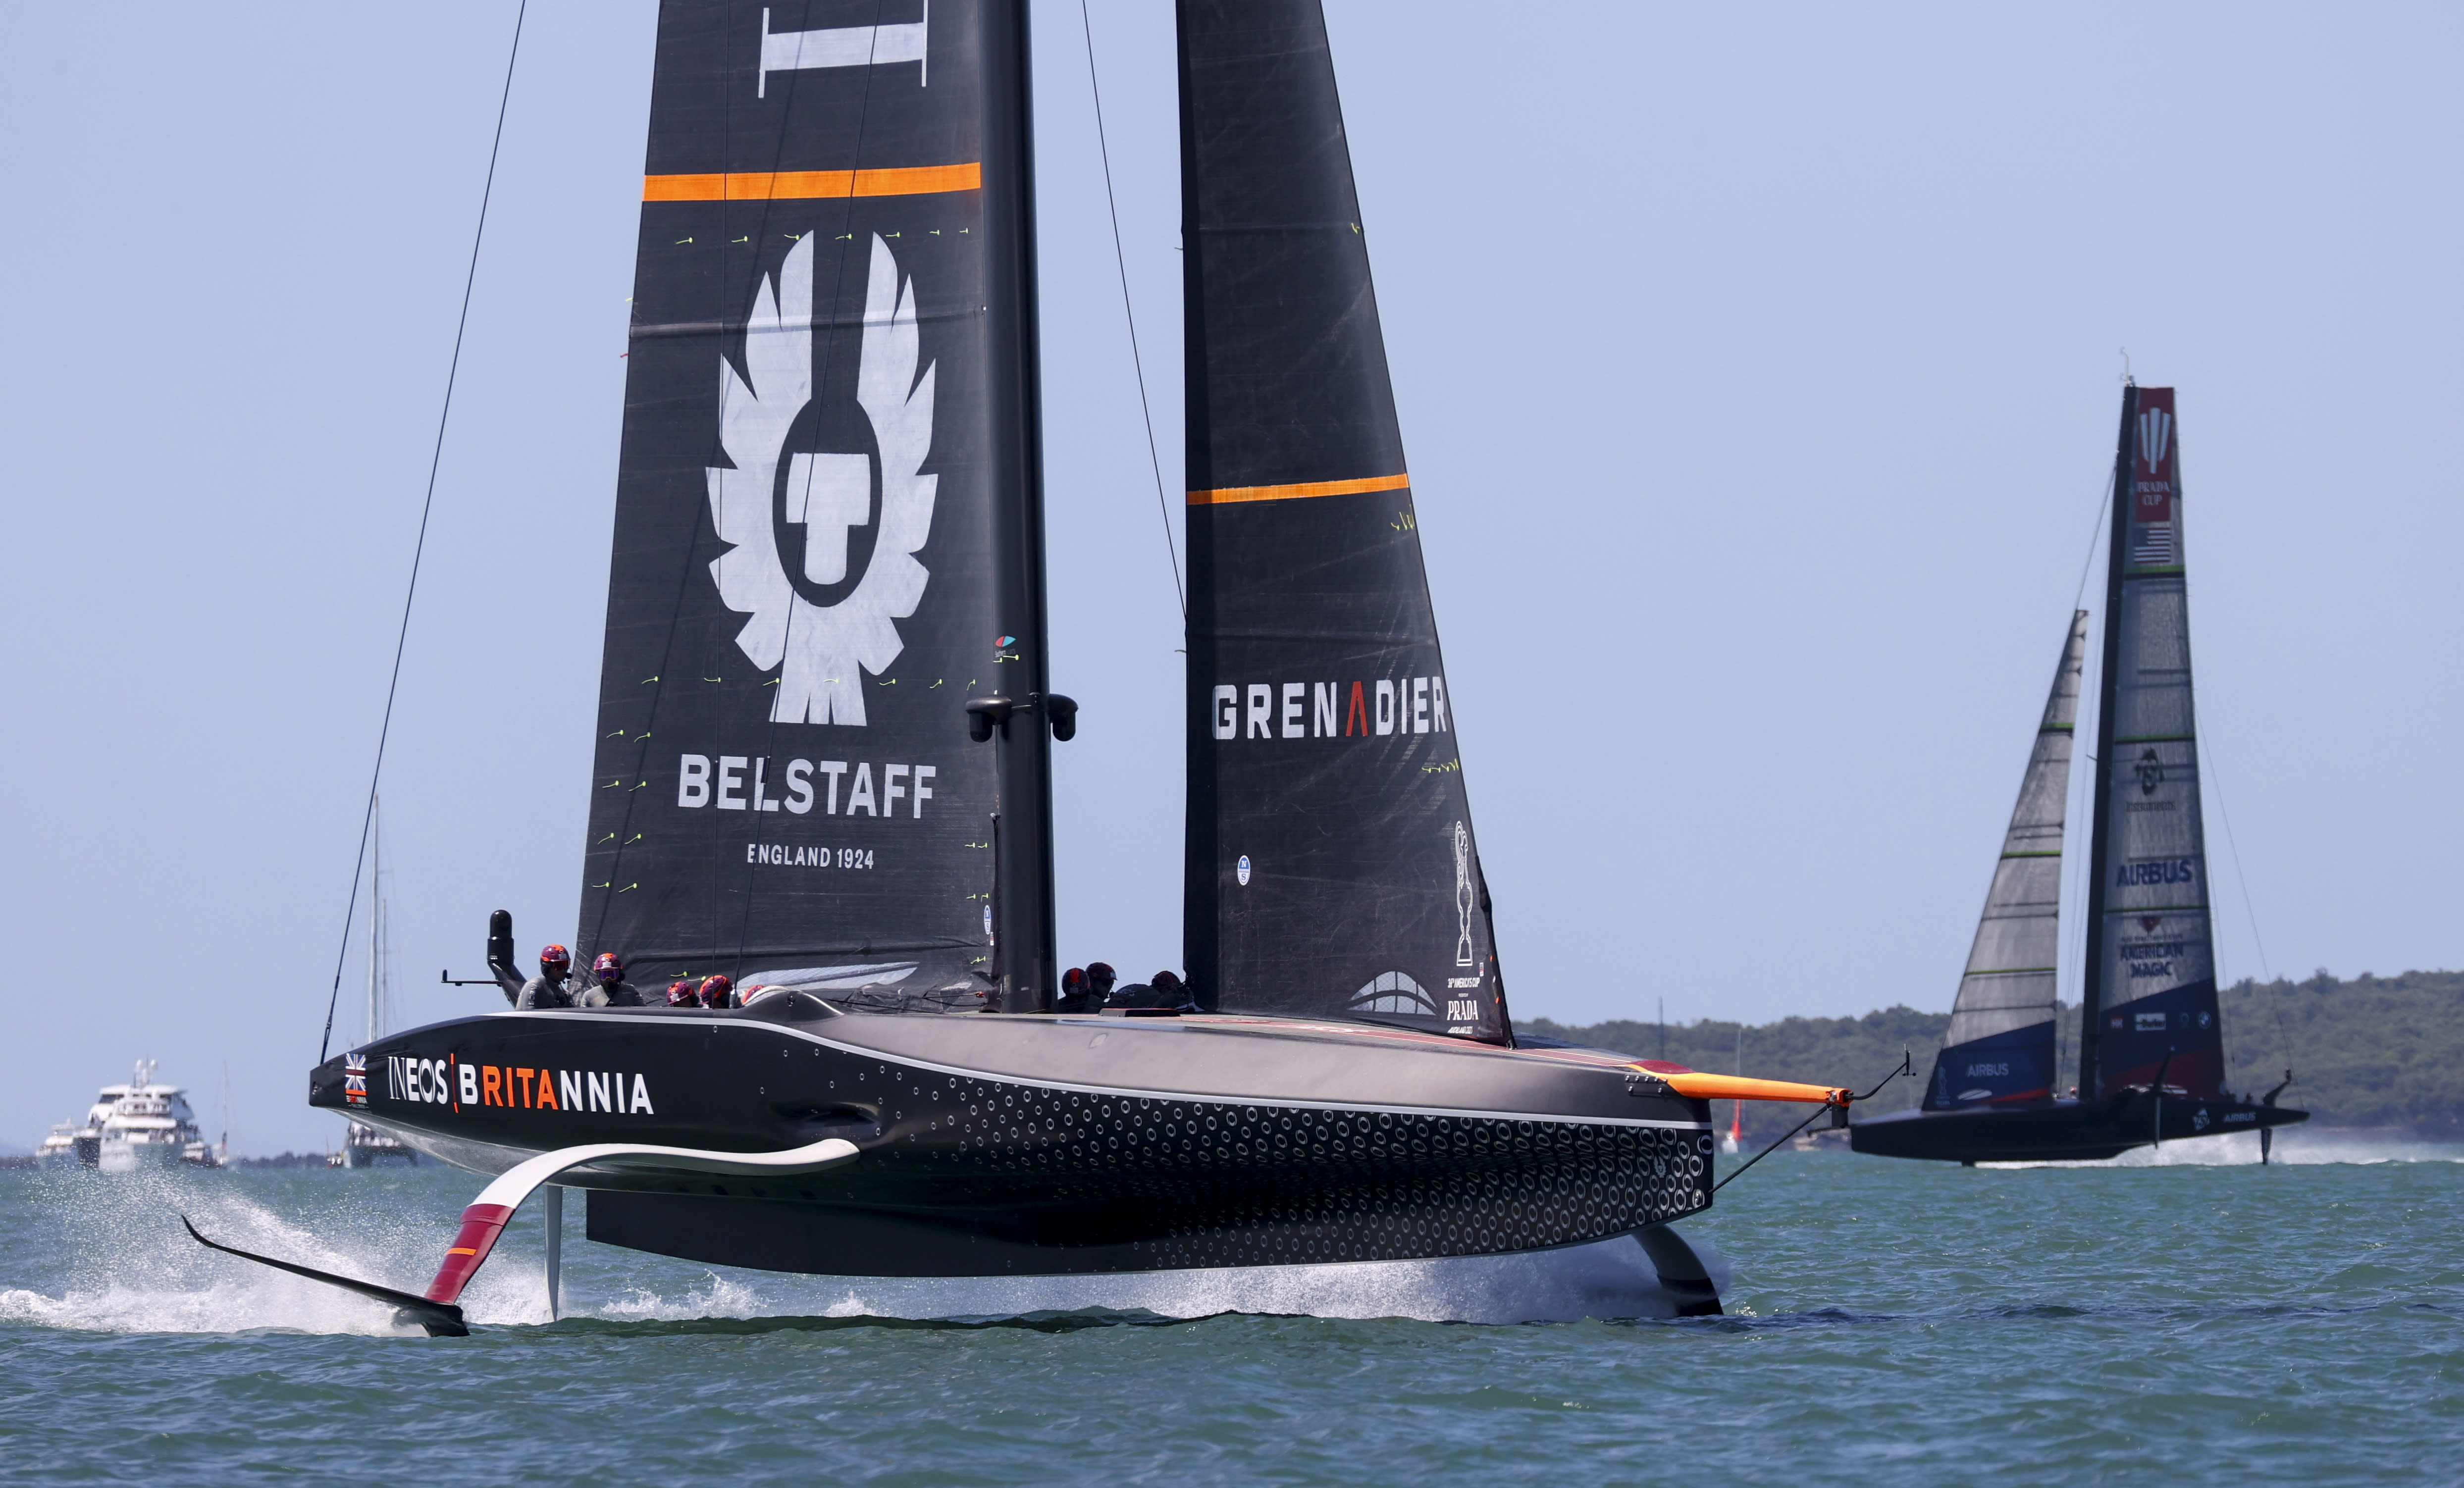 No British bust: Team UK into America's Cup challenger final